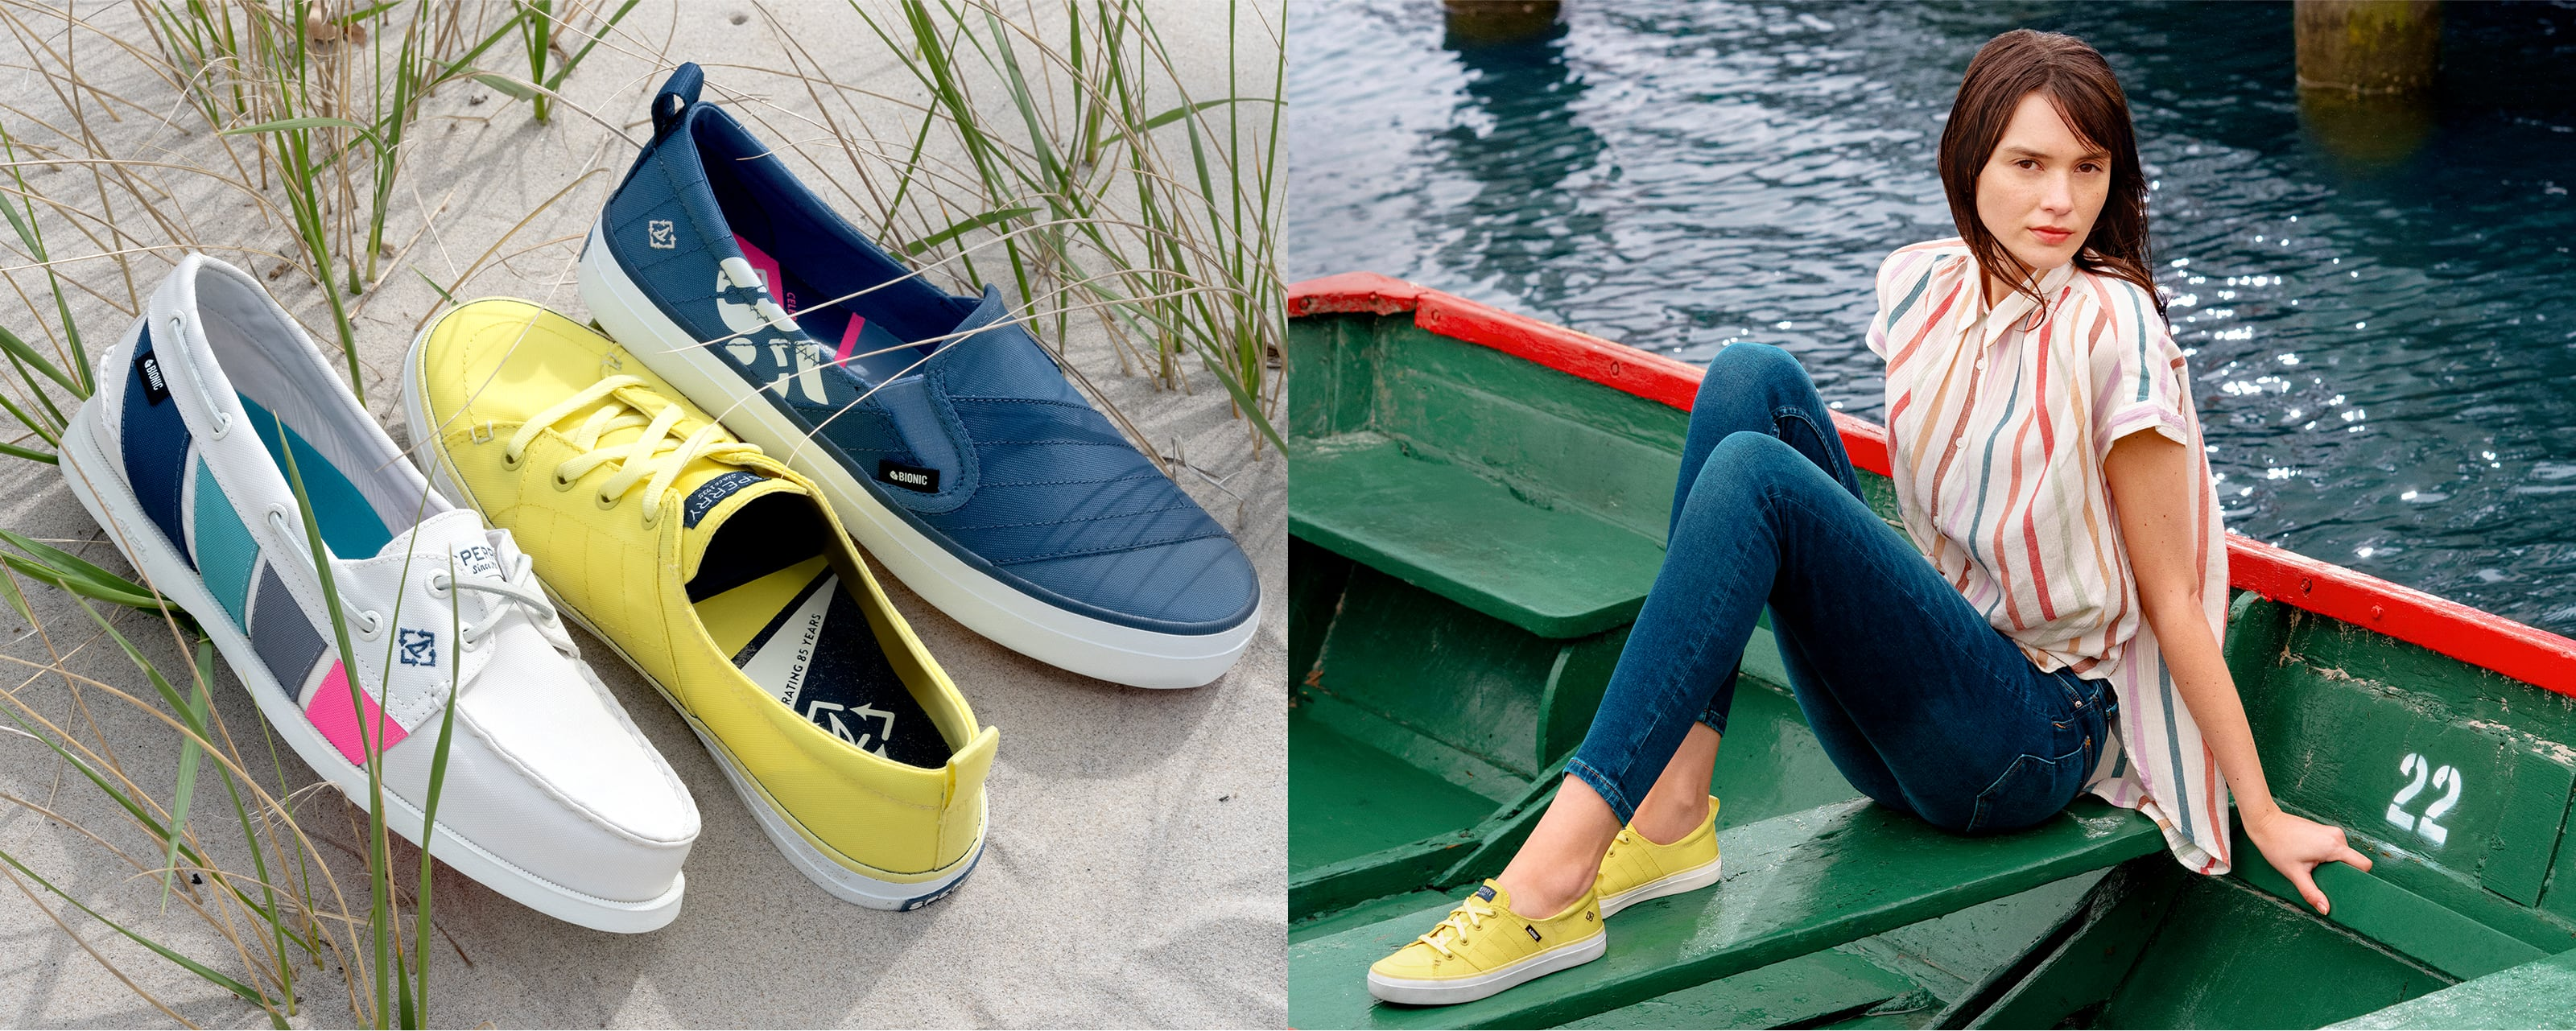 3 pair of women's Sperry Bionic sneakers sitting on sand, and a woman wearing Sperry Bionic sneakers in a row boat.